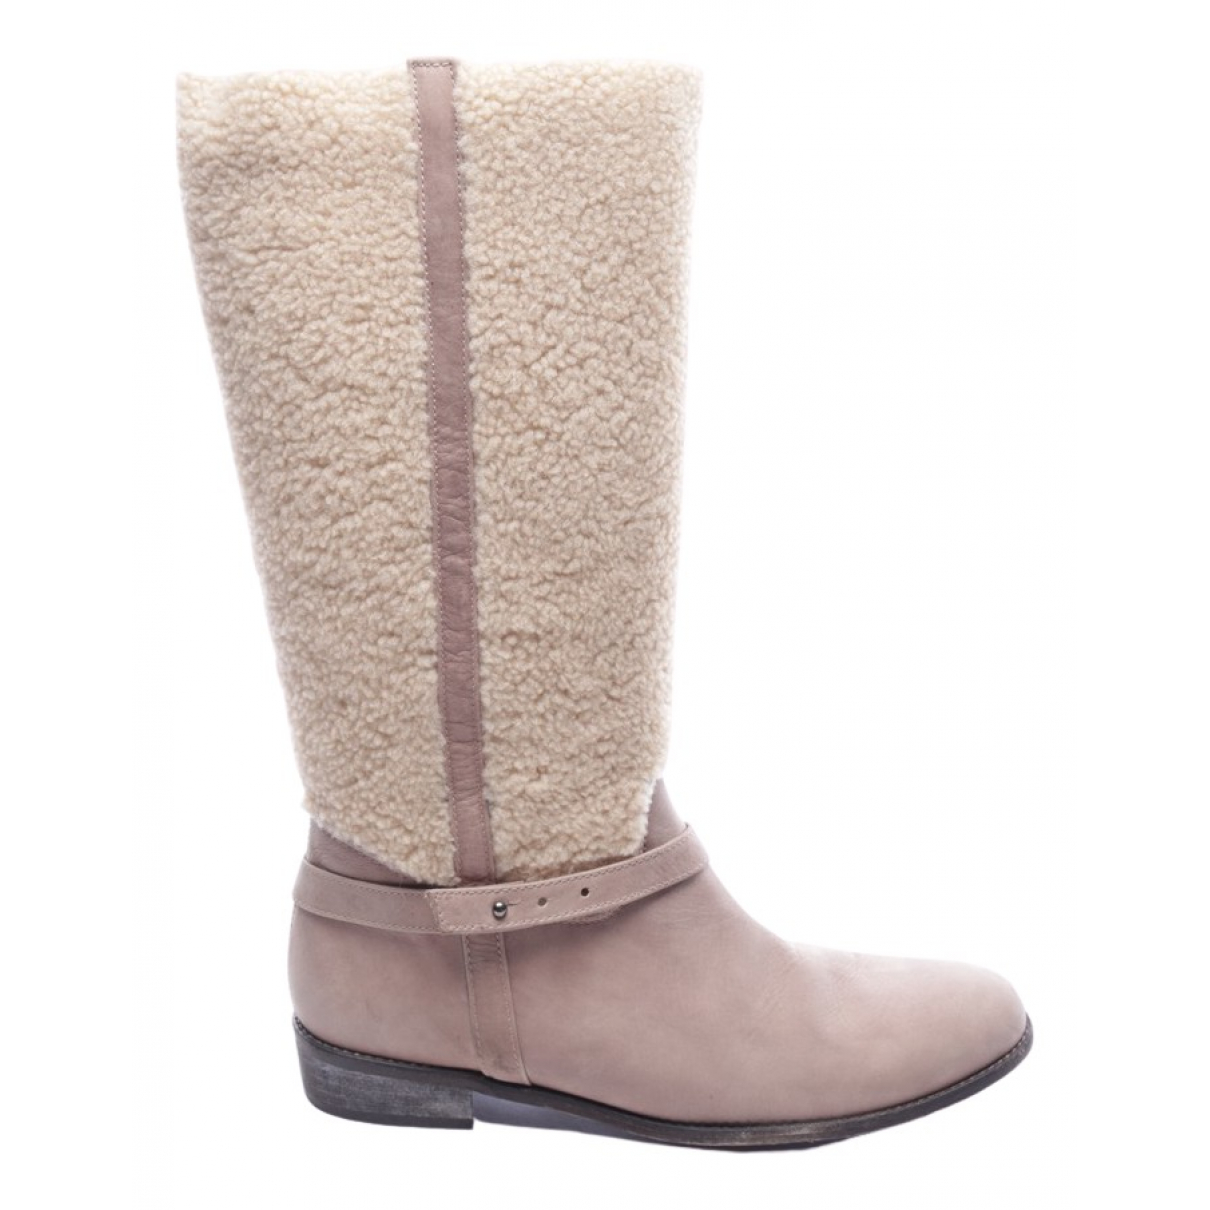 Tatoosh \N Beige Leather Boots for Women 41 EU